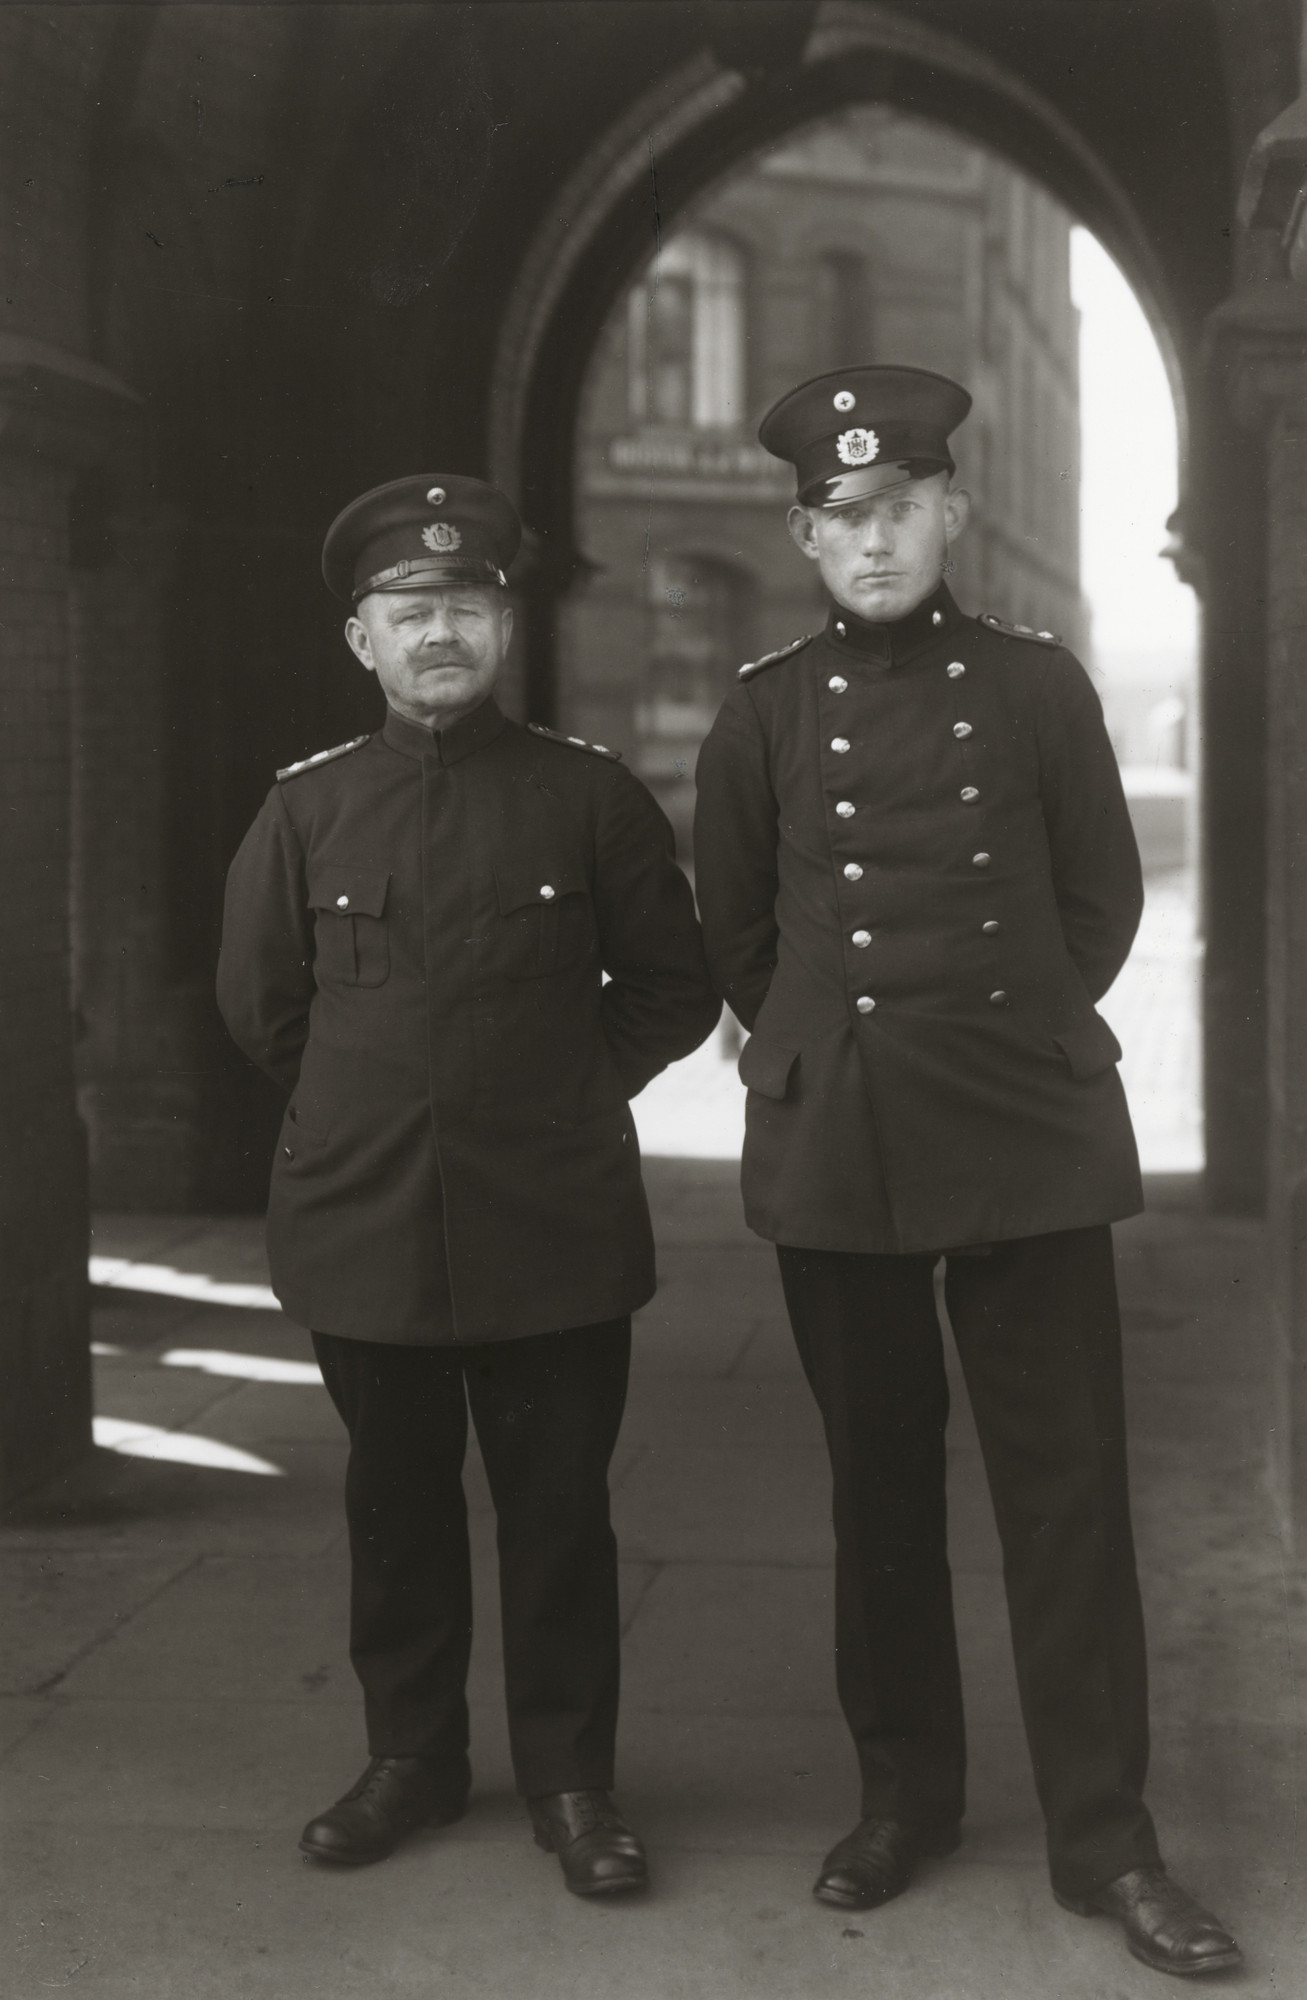 August Sander. Customs Officer. 1929